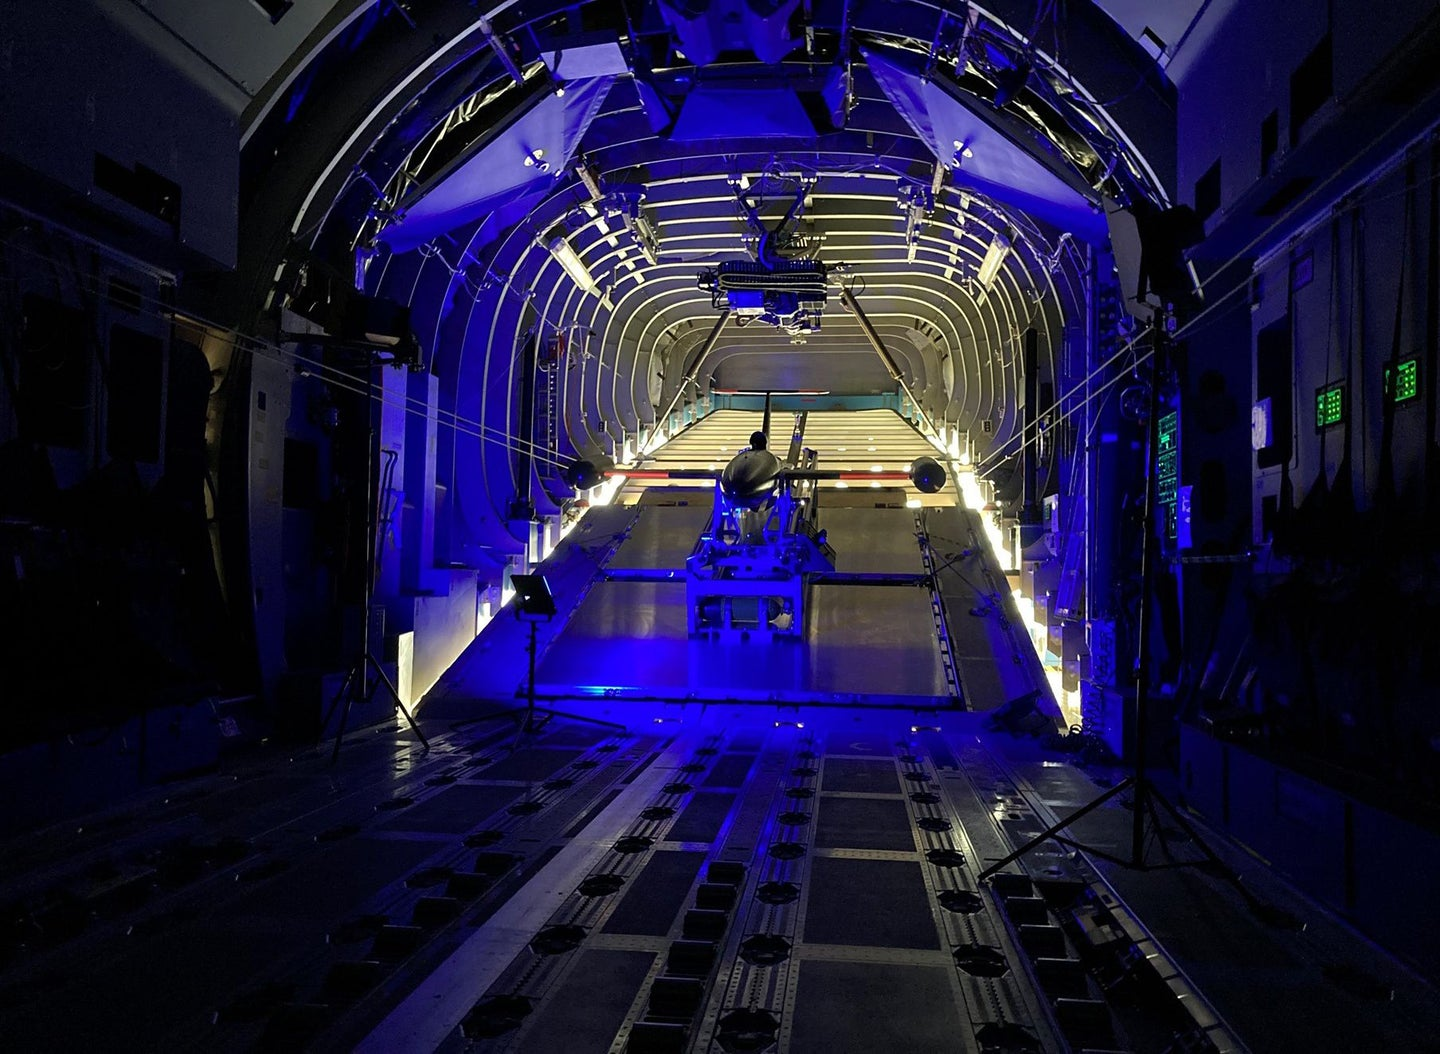 A drone in a launcher in the back of a cargo aircraft.